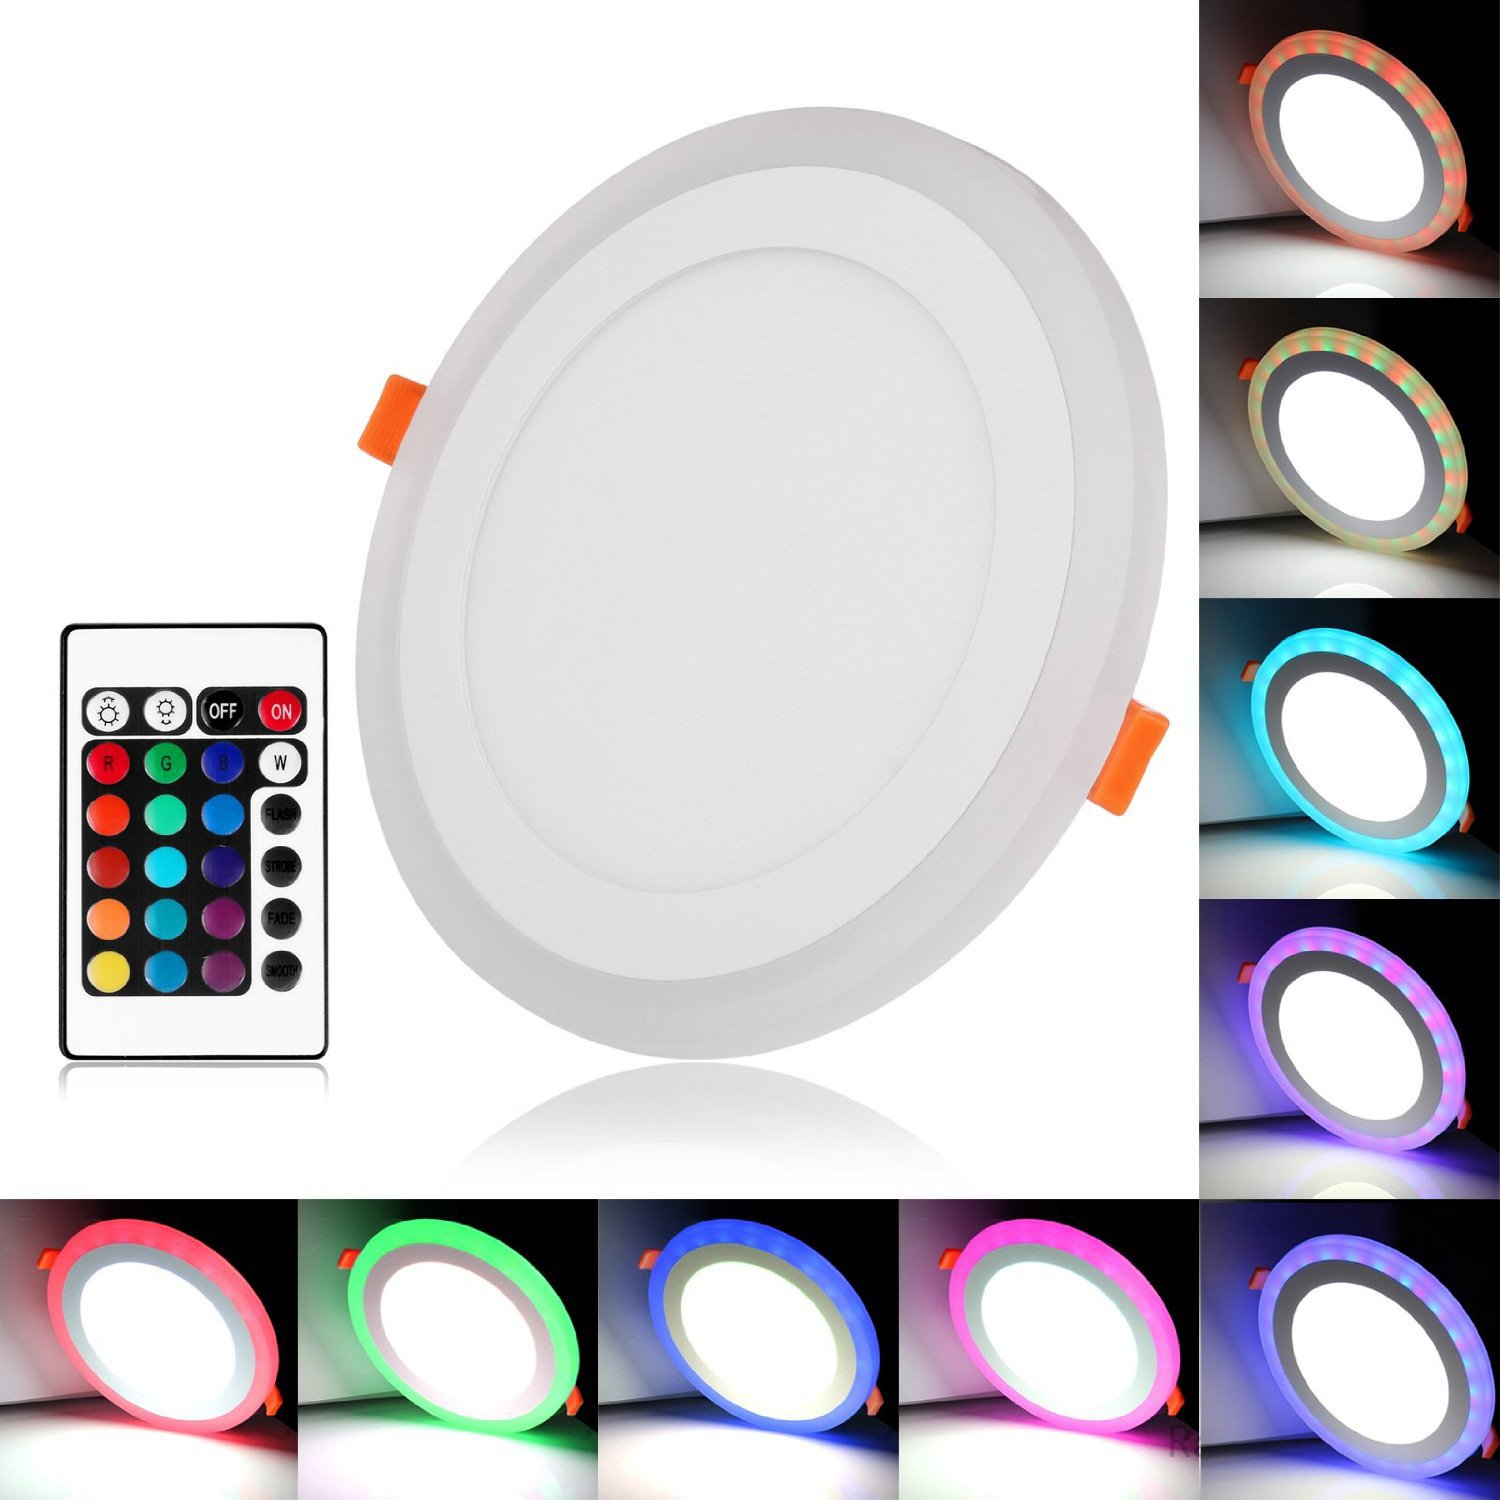 JZLiner LED Panel Lighting Dimmable 12W+ 6W 960LM RGB Color LED Panel Light, Cut Hole: 6.1-Inch Day White LED Recessed Lighting With LED Driver